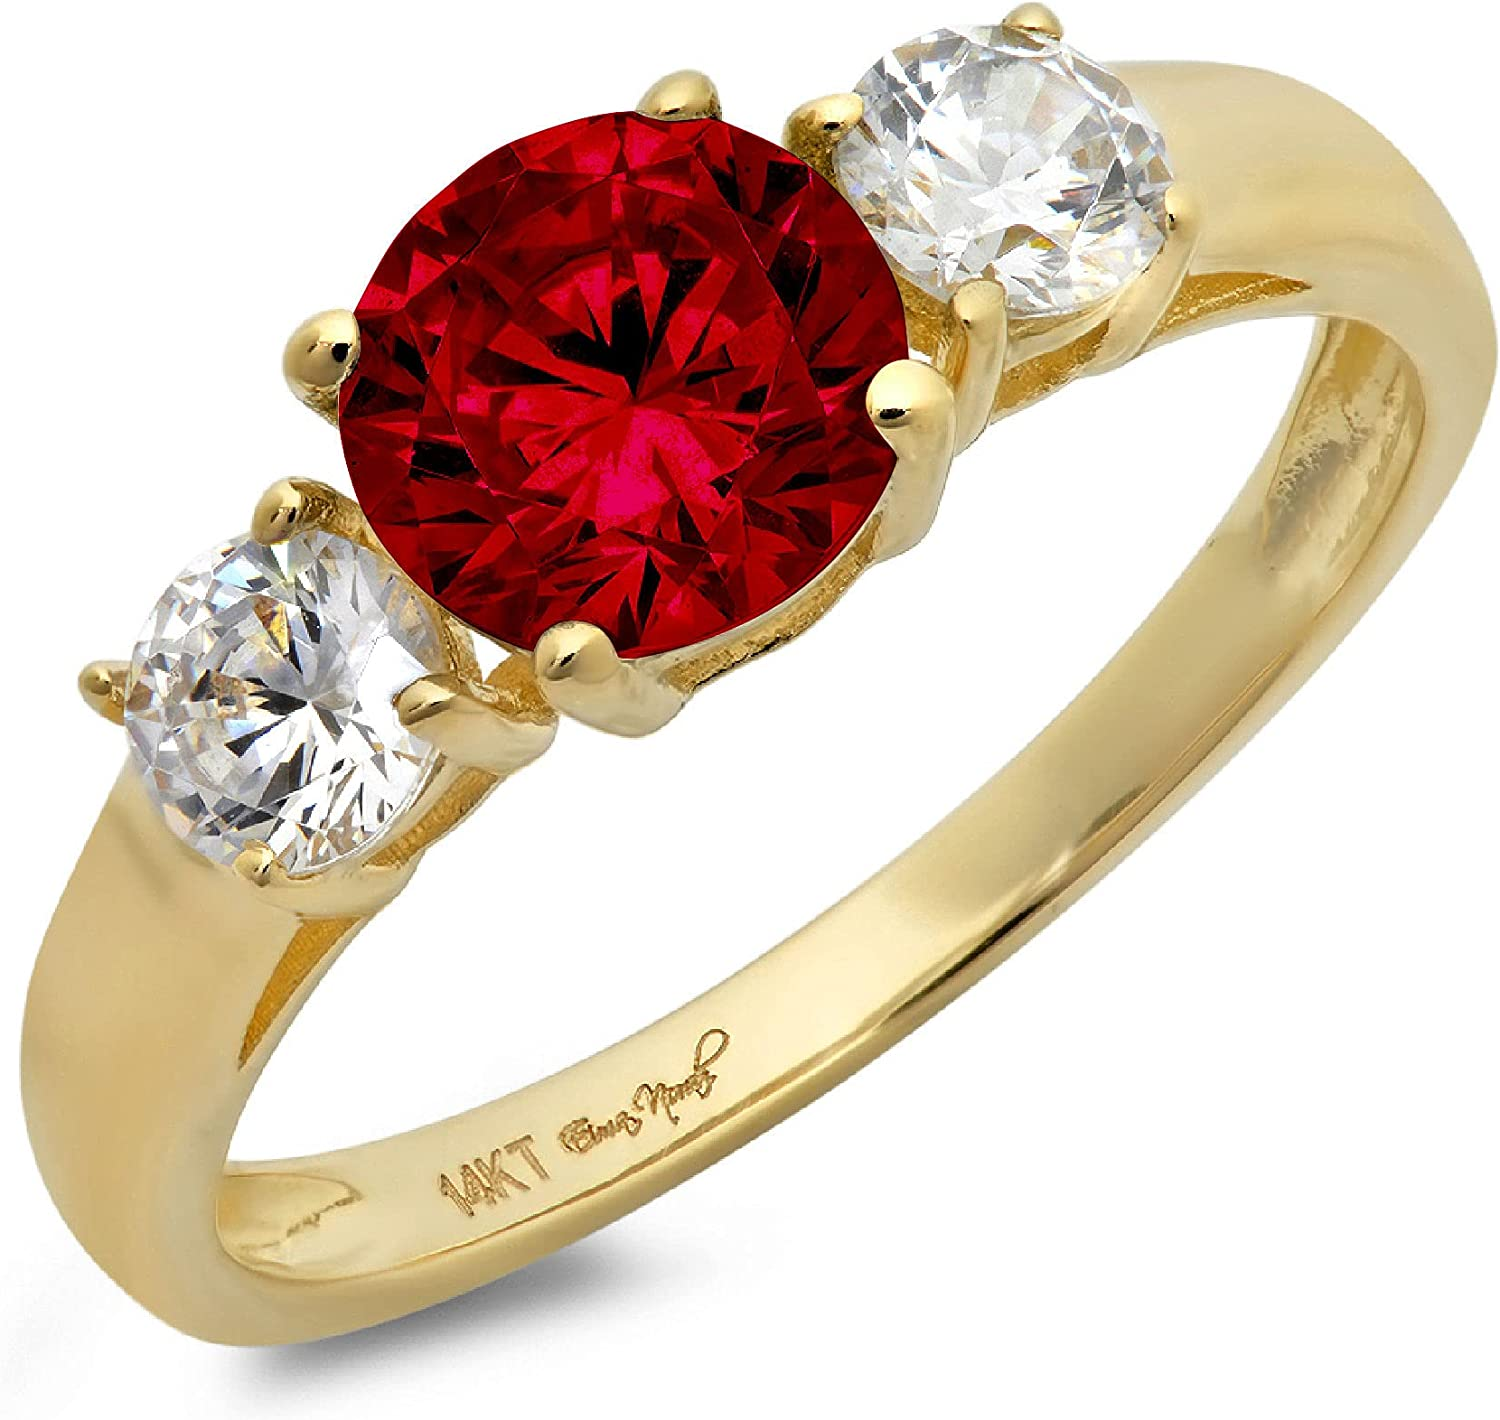 1.50ct Brilliant Round Cut Solitaire 3 stone Genuine Flawless Natural Red Garnet Gemstone Engagement Promise Statement Anniversary Bridal Wedding Ring Solid 18K Yellow Gold